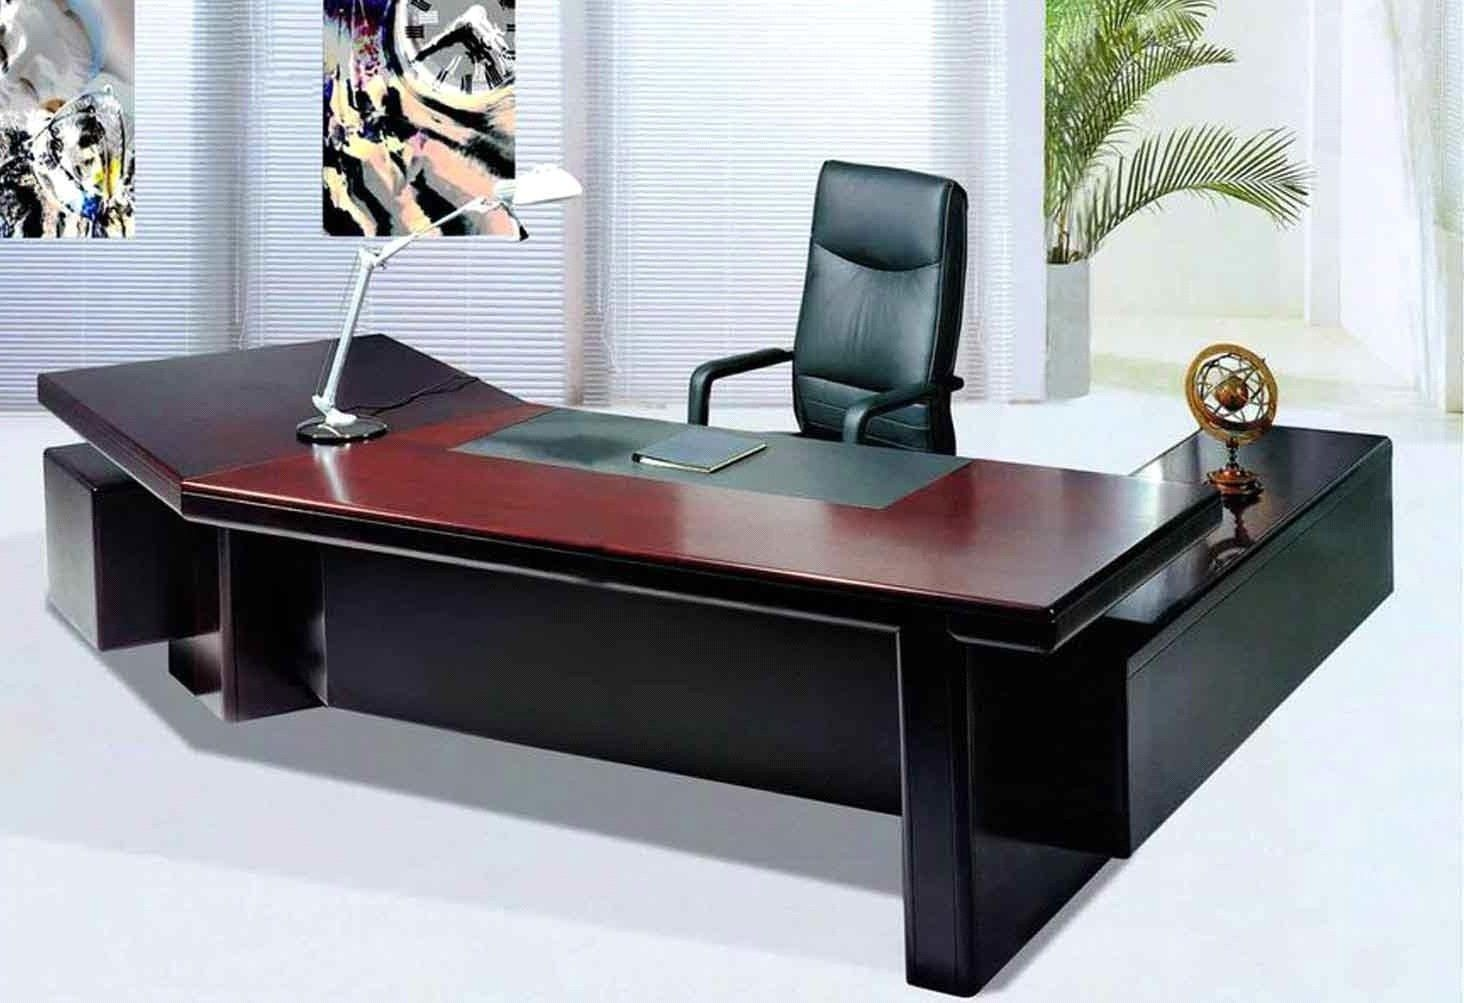 Office Table Design Ideas Modern Office Furniture Desk Office Desk Designs Office Furniture Design